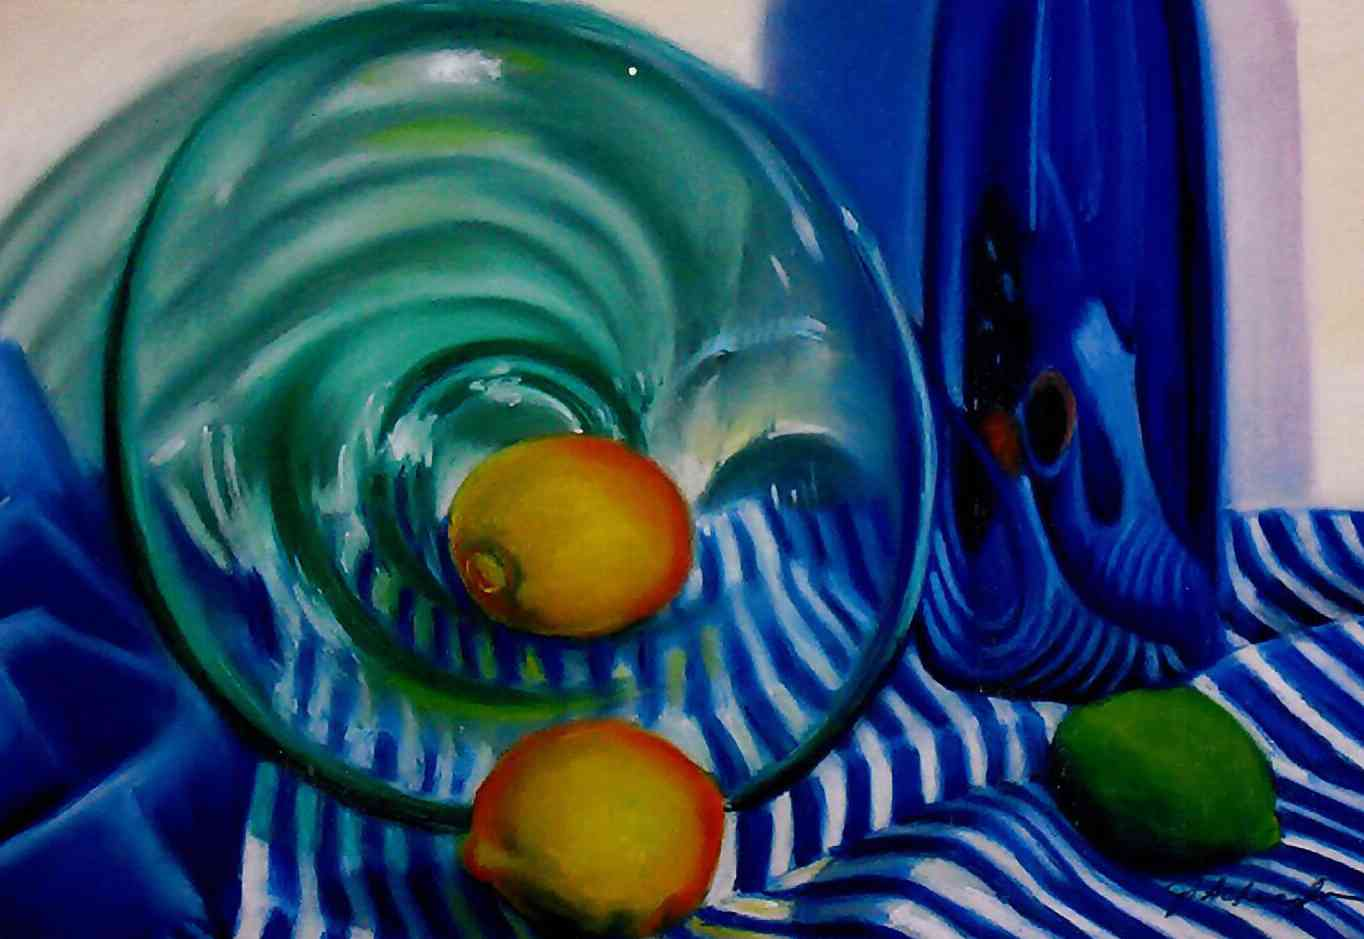 Still_life_with_green_bowl_12_x_19_Pastels_on_board.jpg